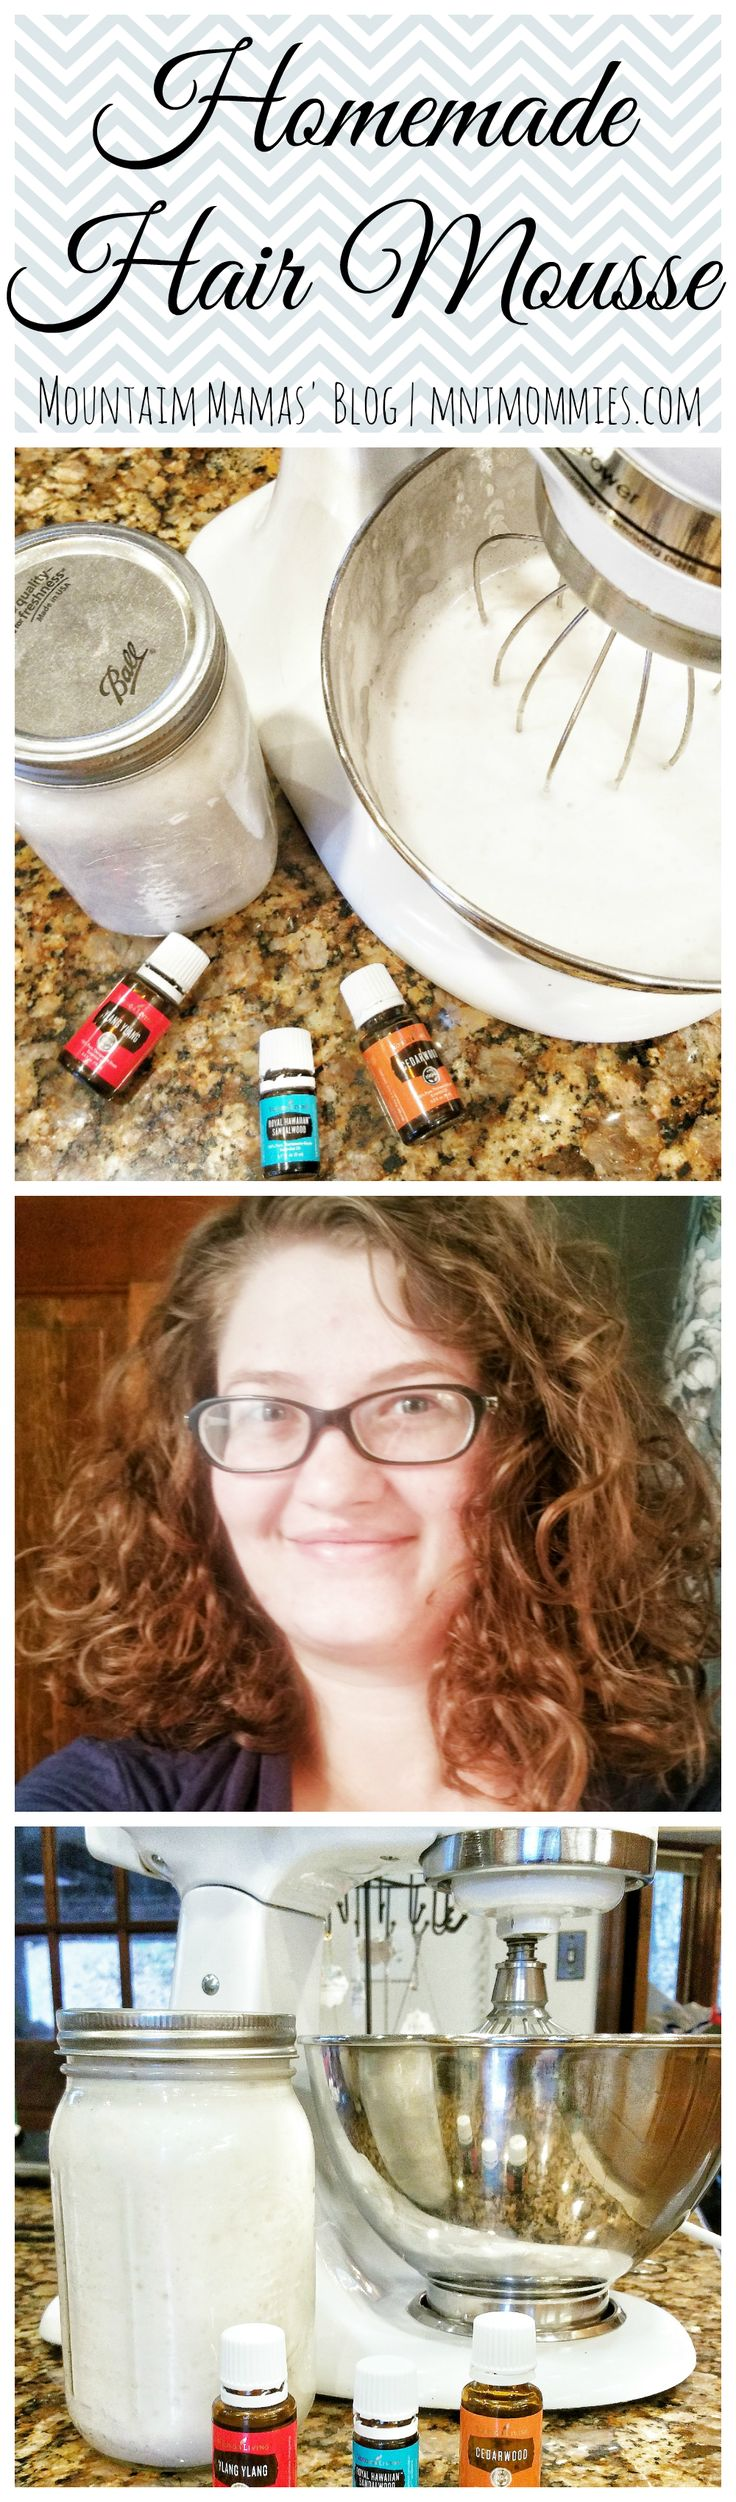 Homemade Hair Mousse | Mountain Mamas' Blog | mntmommies.com